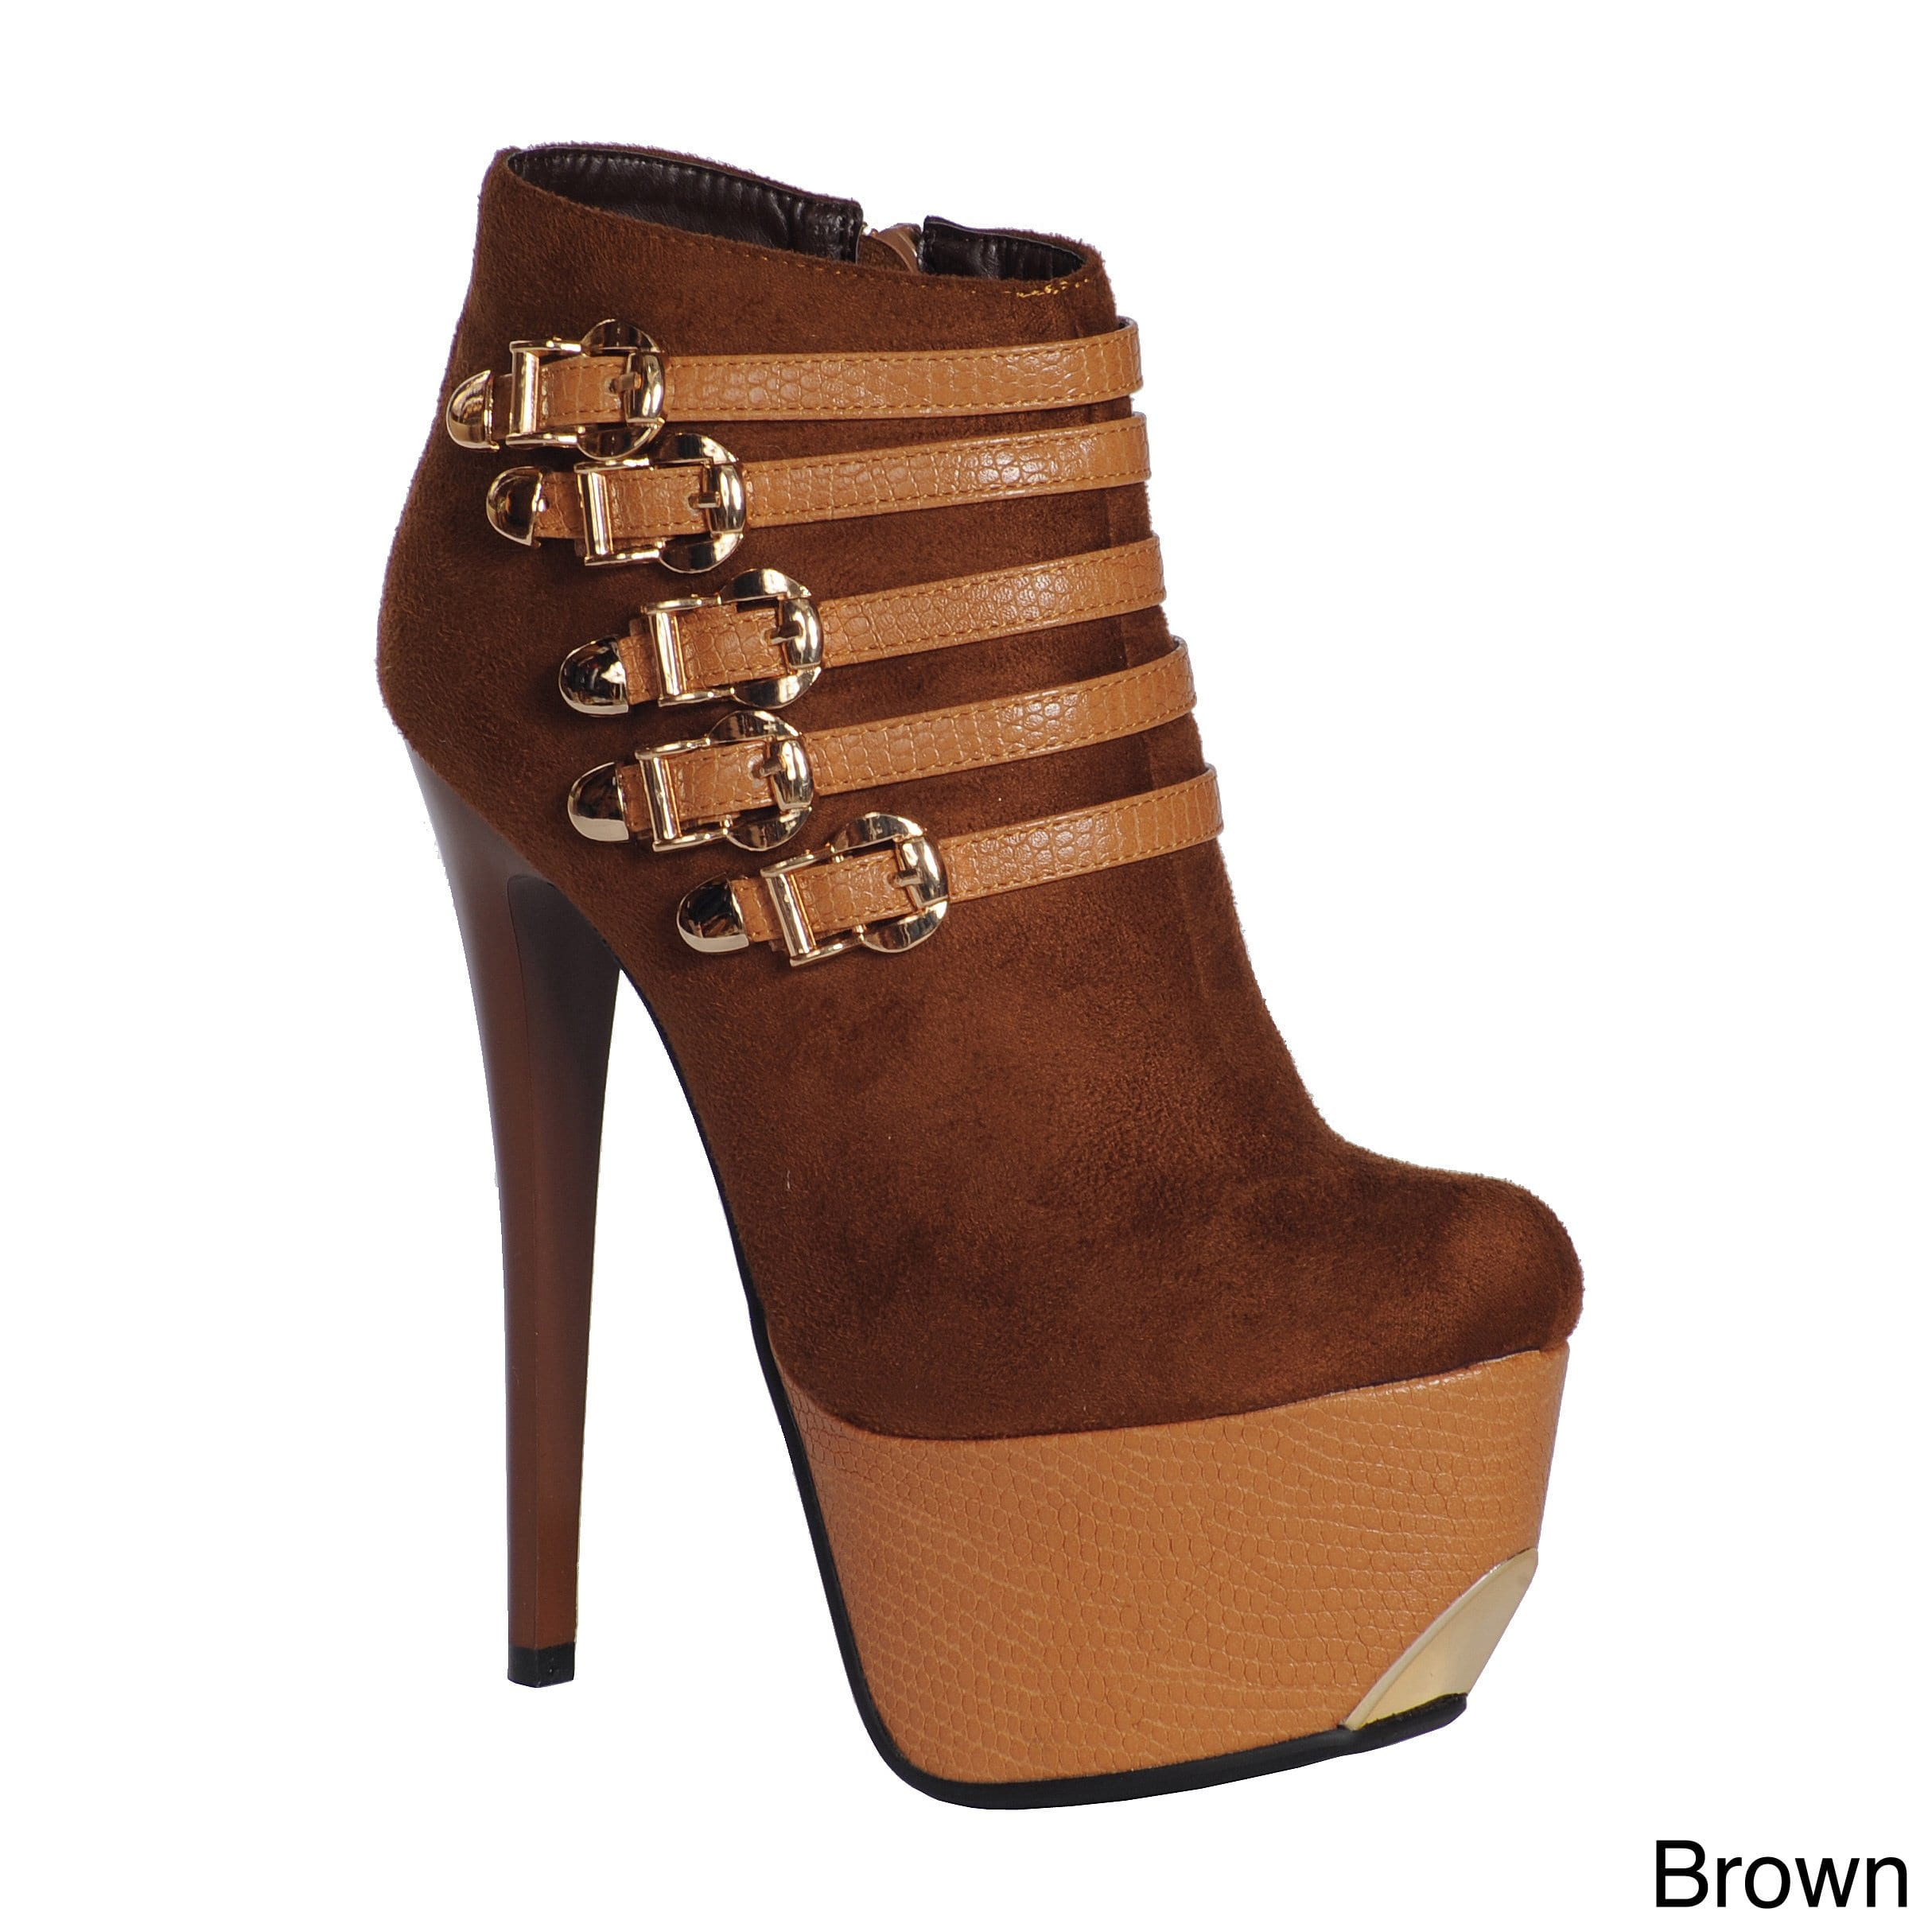 Ann Creek  Women's 'Chambly' Heels Ankle Boots Brown 9.5